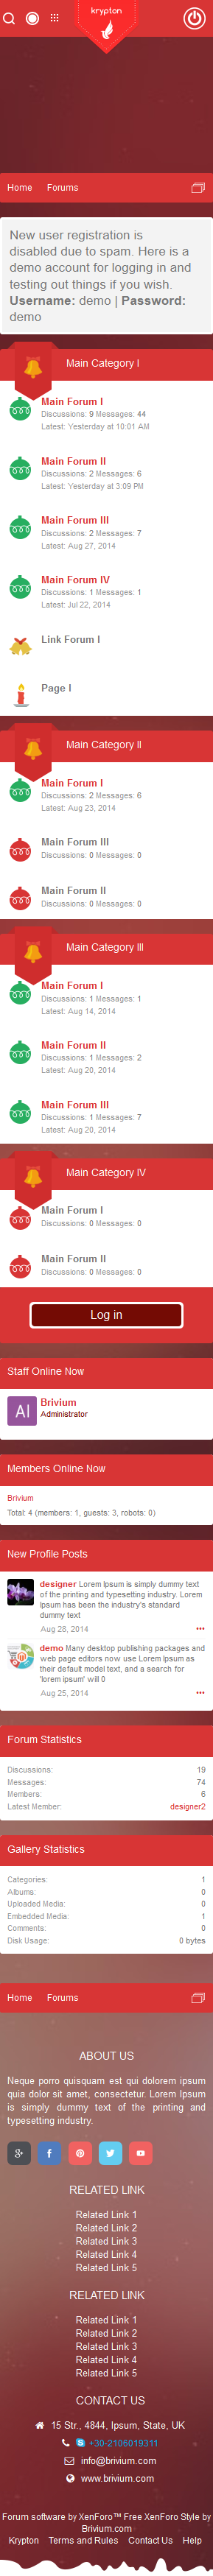 mobile_forum_list.png